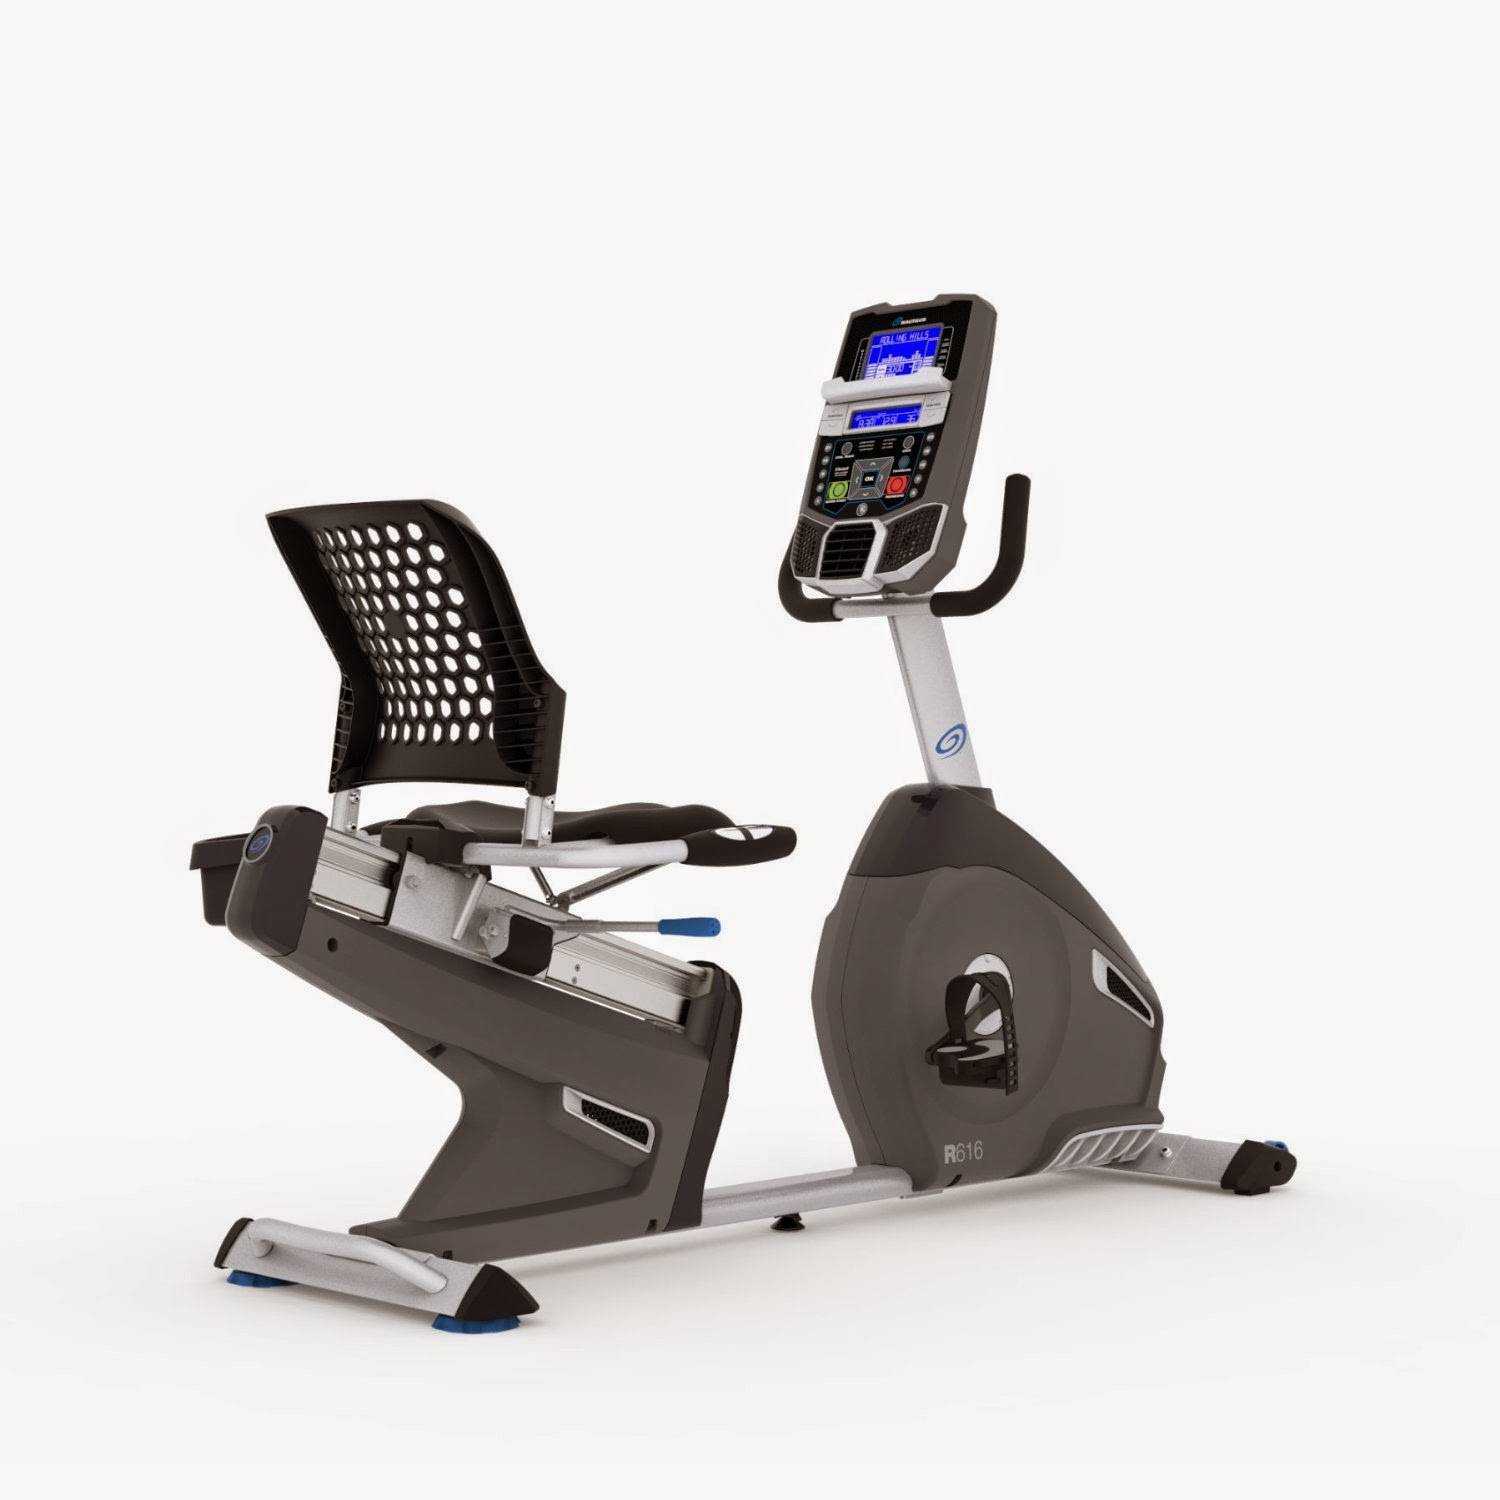 Nautilus R616 Recumbent Exercise Bike, review features and compare with Nautilus R614, 29 workout programs, 25 resistance levels